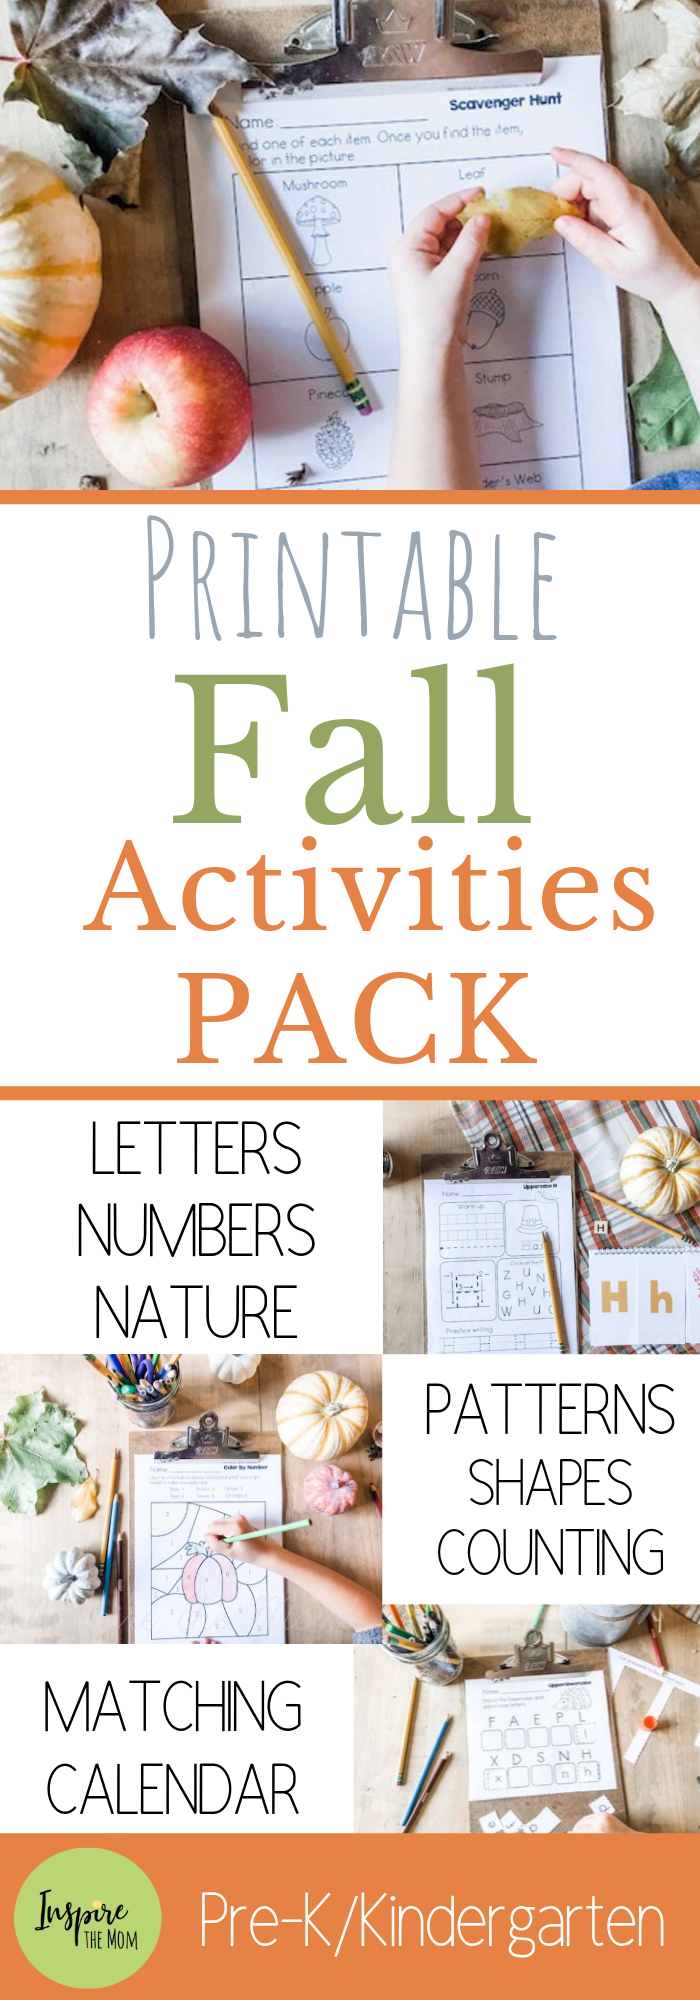 Huge Fall Activities Pack for Pre-k and Kindergarten - Inspire the Mom Awesome,Huge, Fall Activitie